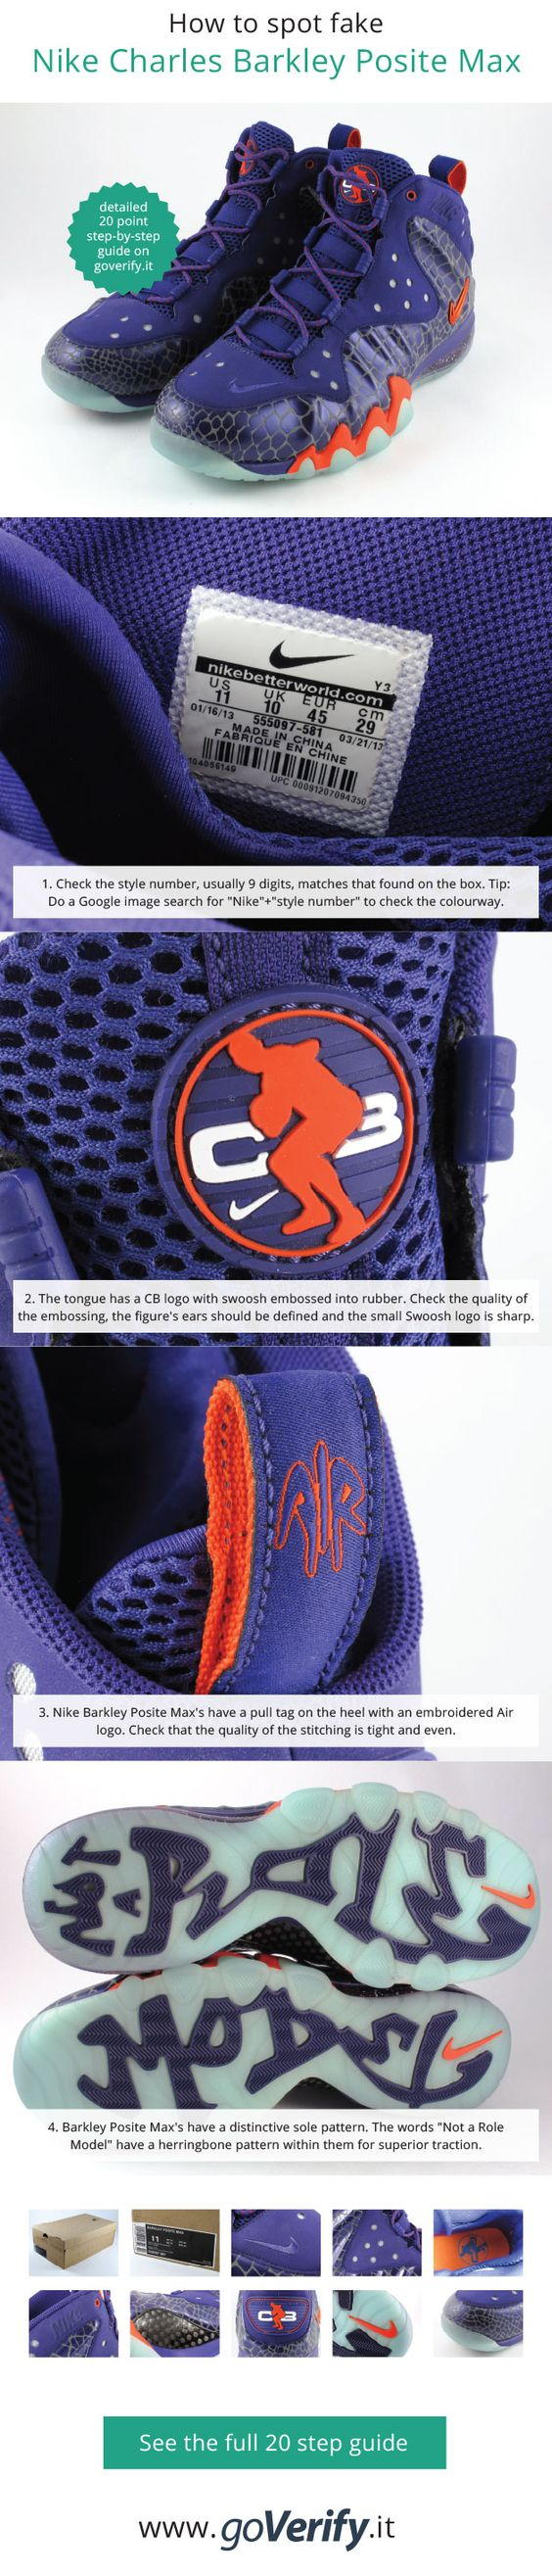 How to spot fake Nike Air Foamposite 1's, go to www.goverify.it for a full  15 point step-by-step guide. | How to spot fake Nike's | Pinterest